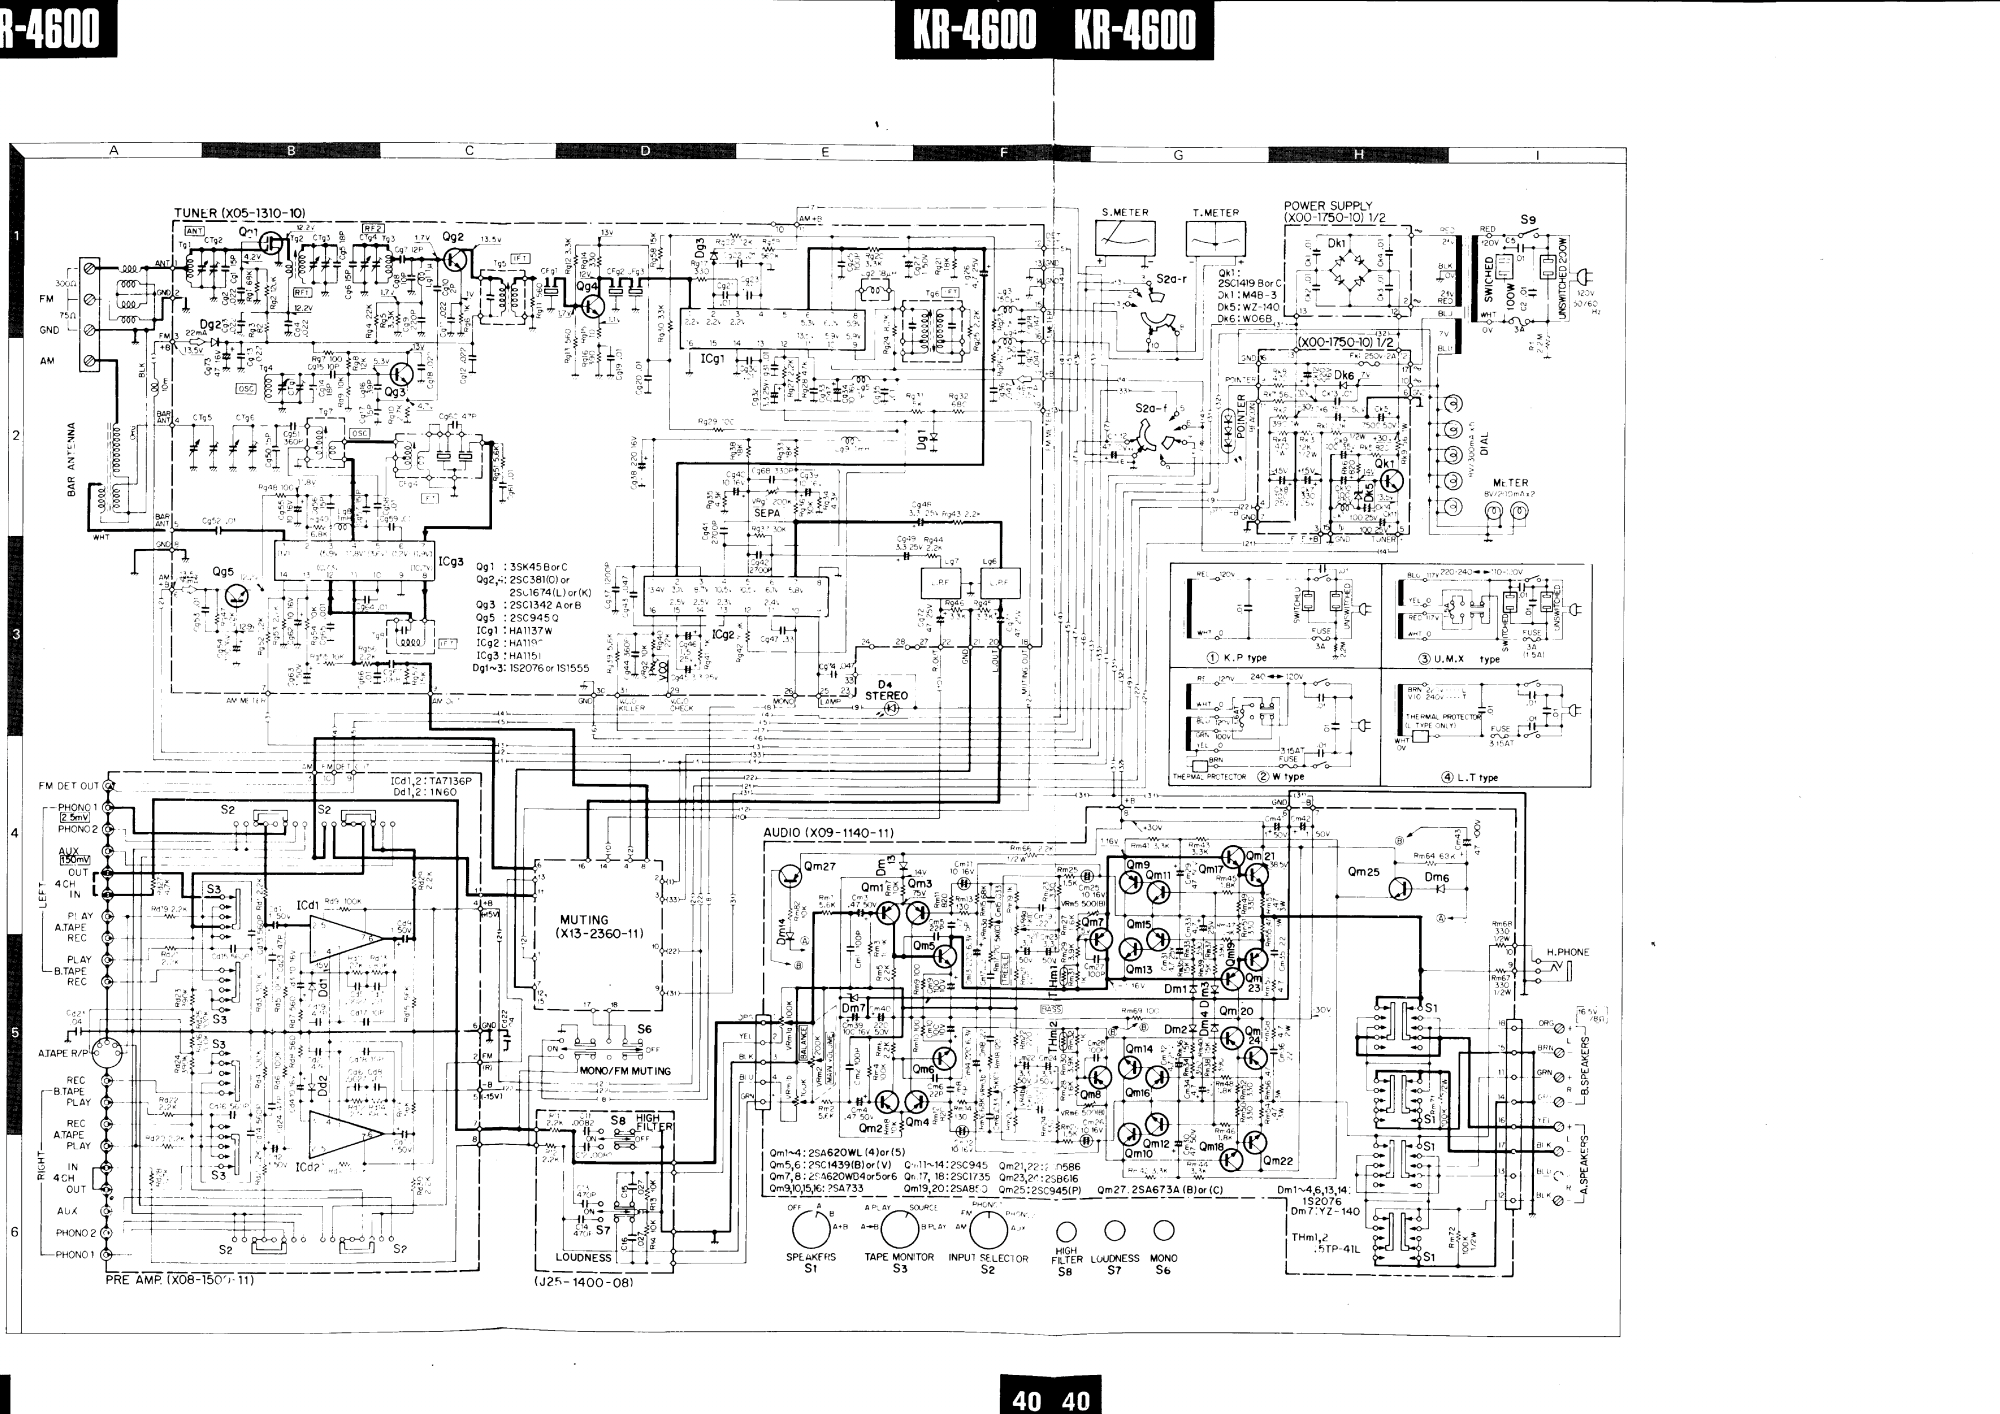 hight resolution of kenwood kr 4600 am fm receiver sch service manual 2nd page